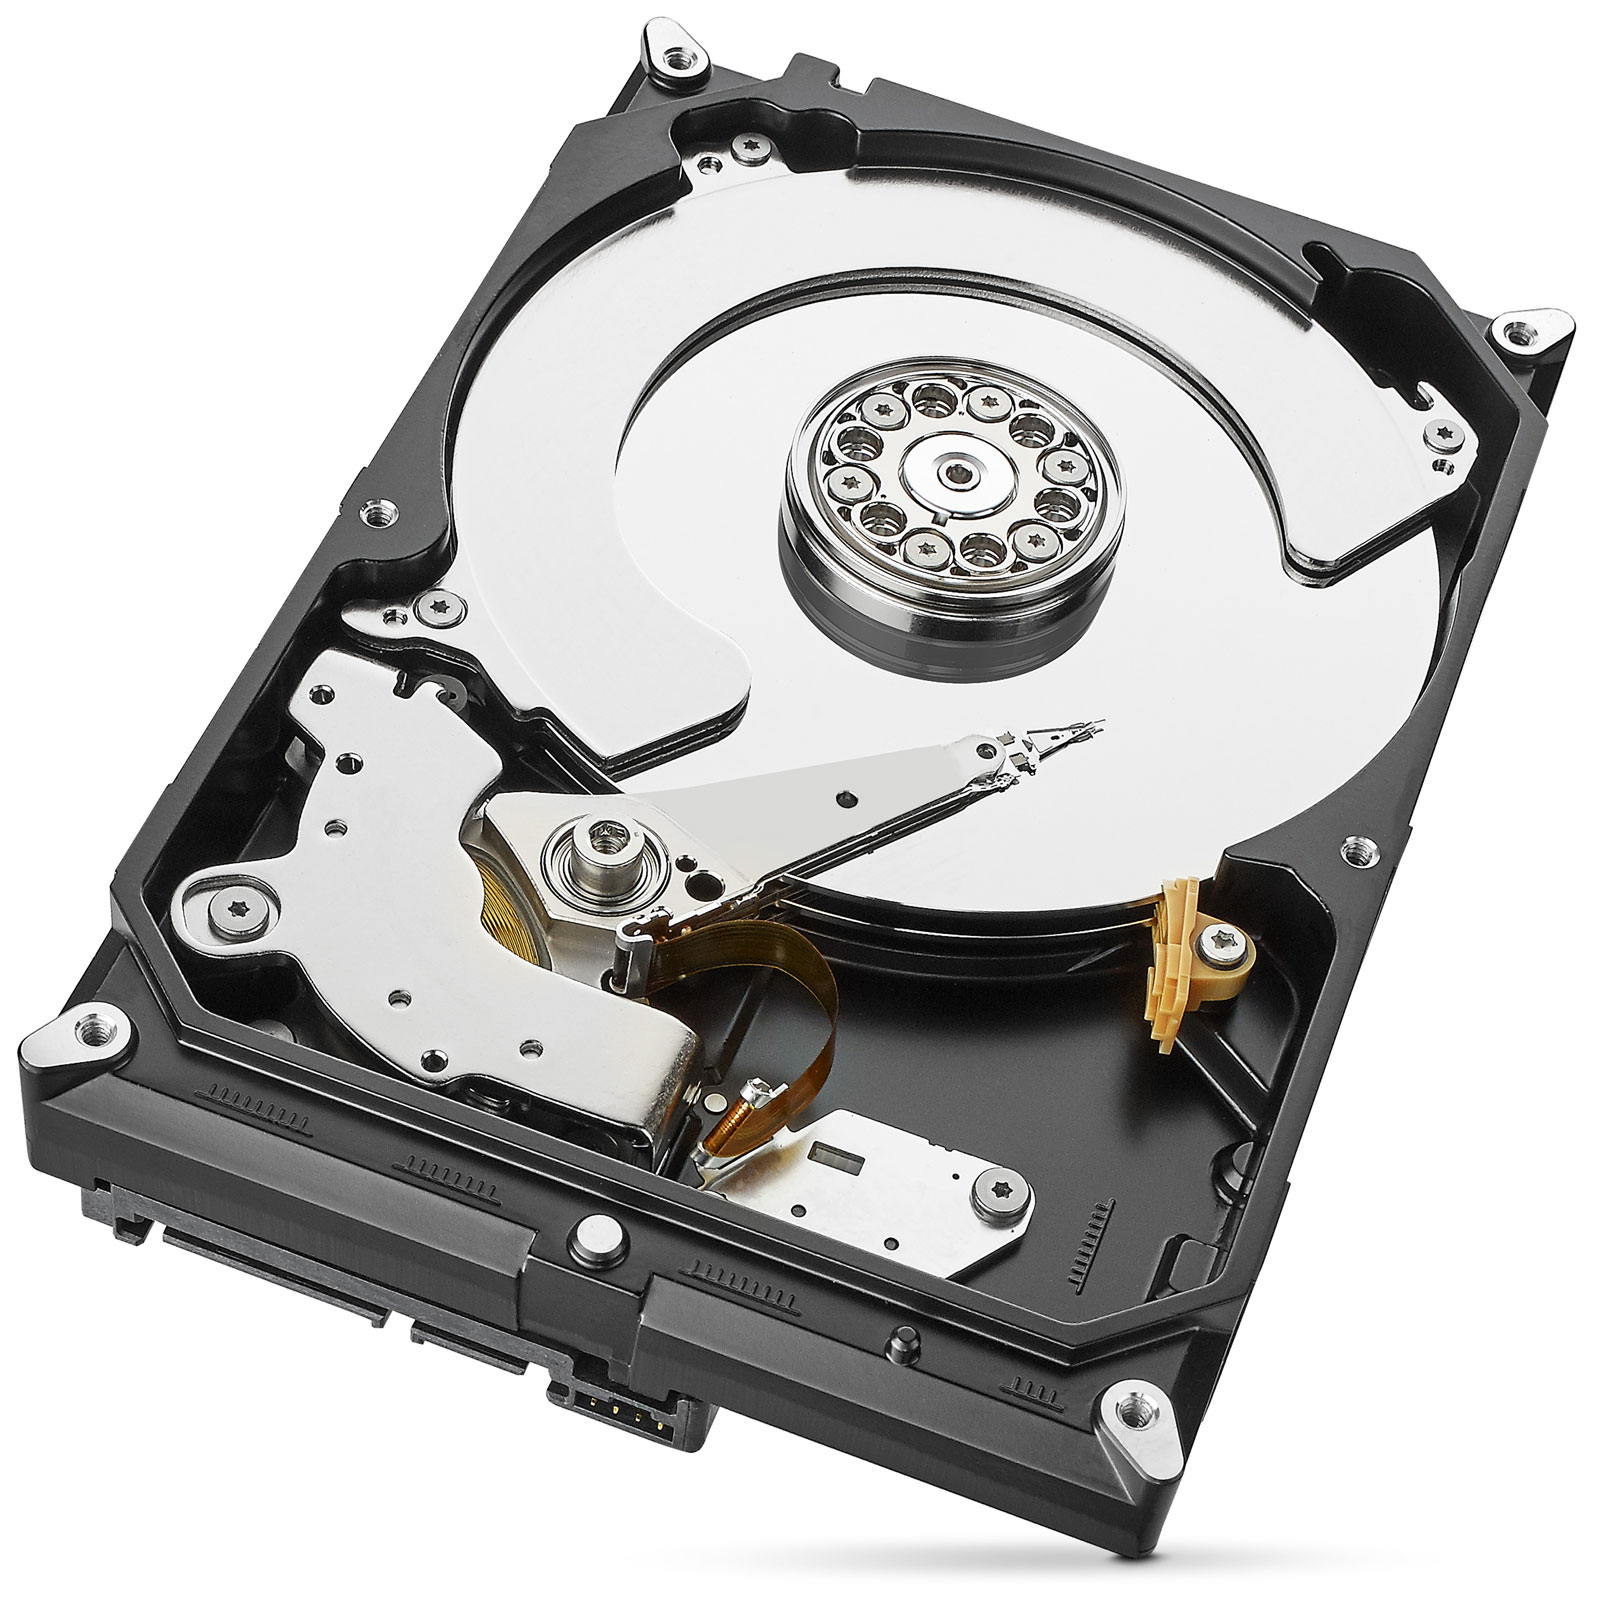 "Seagate 4To 5400tr SATA III 256Mo Barracuda ST4000DM004 - Disque dur interne 3.5"" - 1"